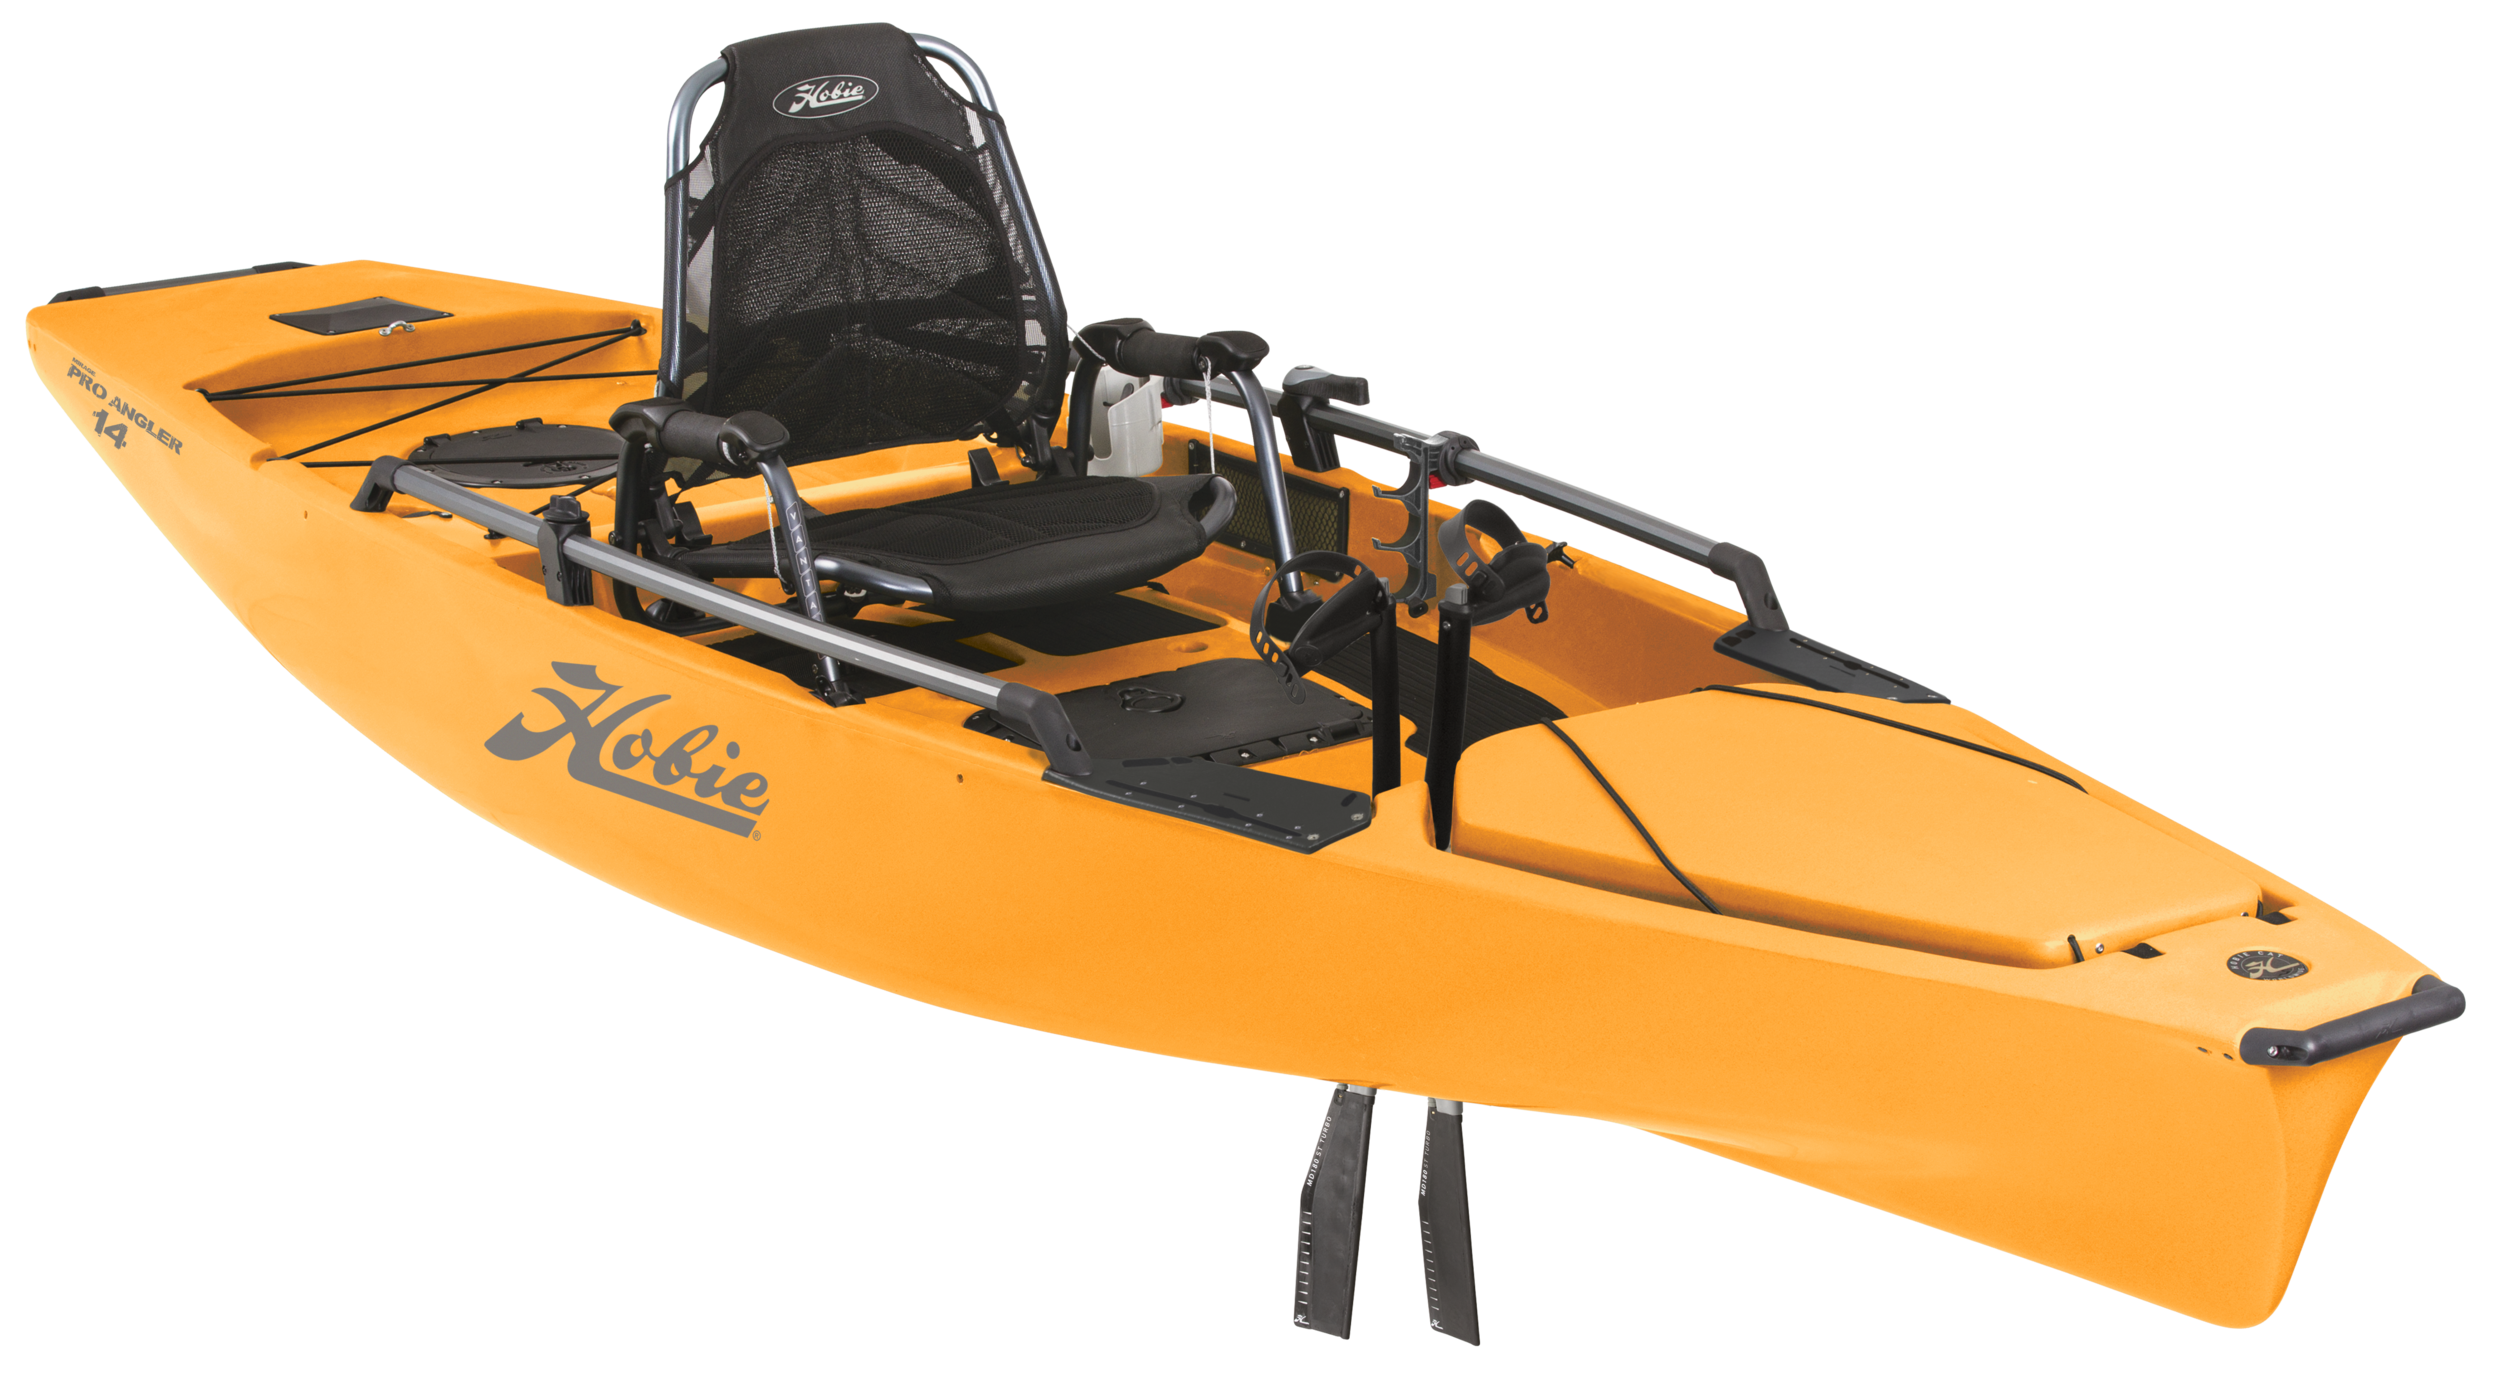 Mirage Pro Angler 14   Hobie's original Pro Angler packs extreme fishing utility, with scads of (that's six) horizontal rod lockers, enough tackle compartments to empty a store, and an elevated Vantage ST seat that's as much easy chair as captain's perch.